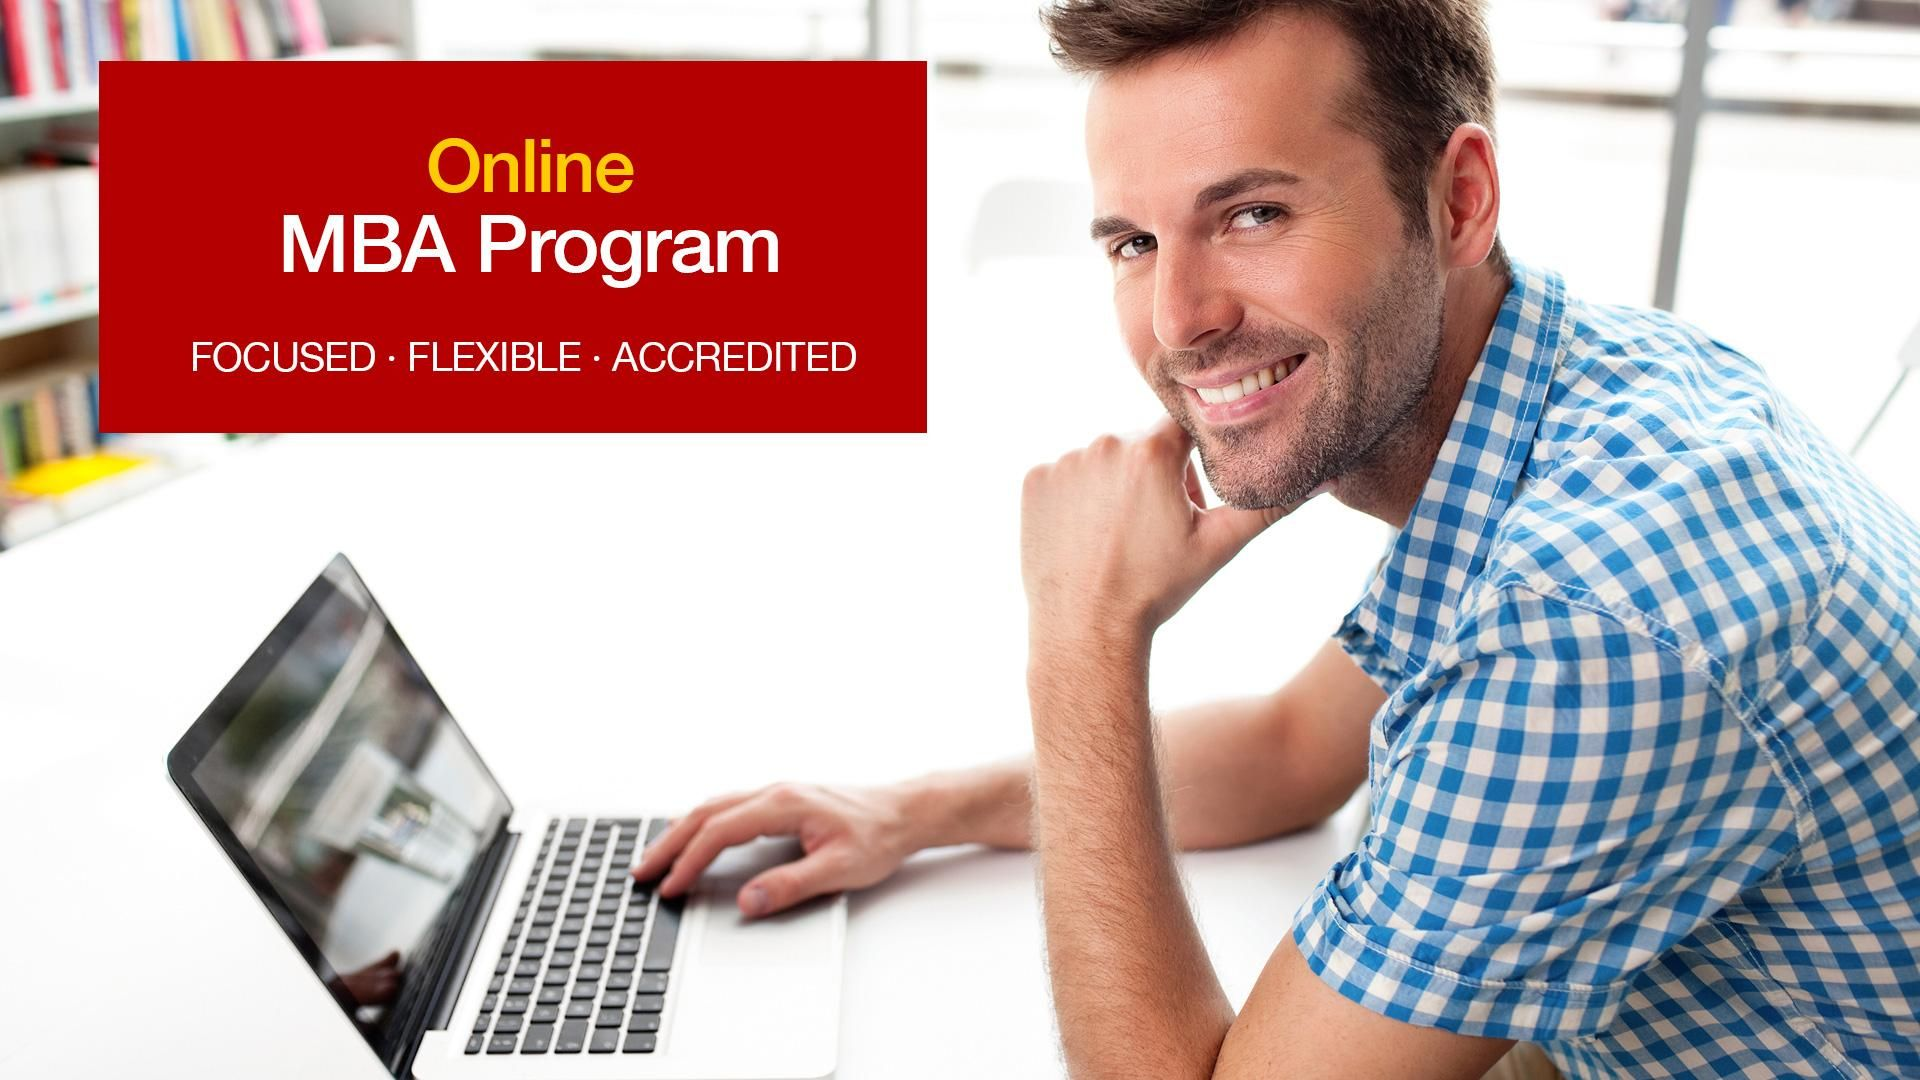 Online Master S In Business Administration Online Mba Right To Education Mba Student